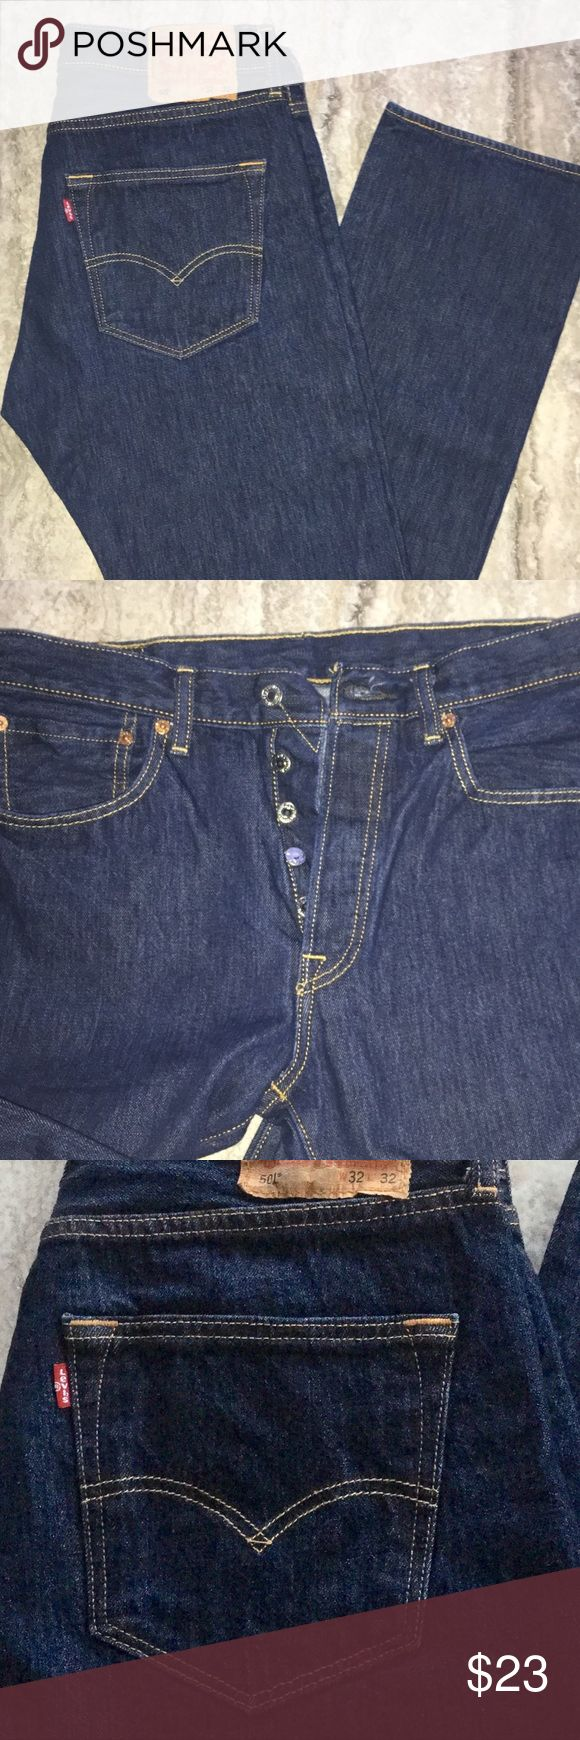 MENS LEVIS 501 Men's Levi's 501 Jeans / gently worn, well cared for. Straight fit with button fly, sits at waist, regular through thigh with straight leg. In color rinsed indigo. Purchased at Macy's, currently on sale on their site for $40. Definitely a classic for any man! Been professionally hemmed. Will update with current length. Levi's Jeans Straight